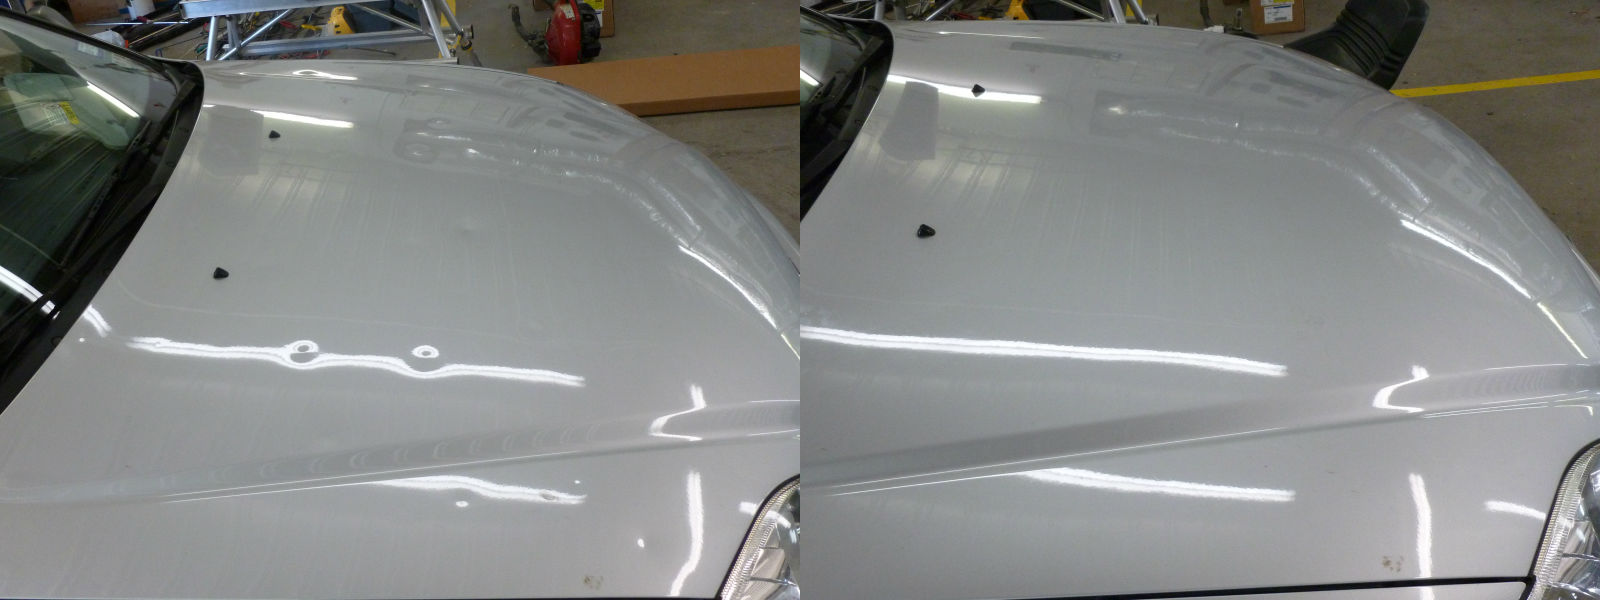 Our Work - Jersey Dents